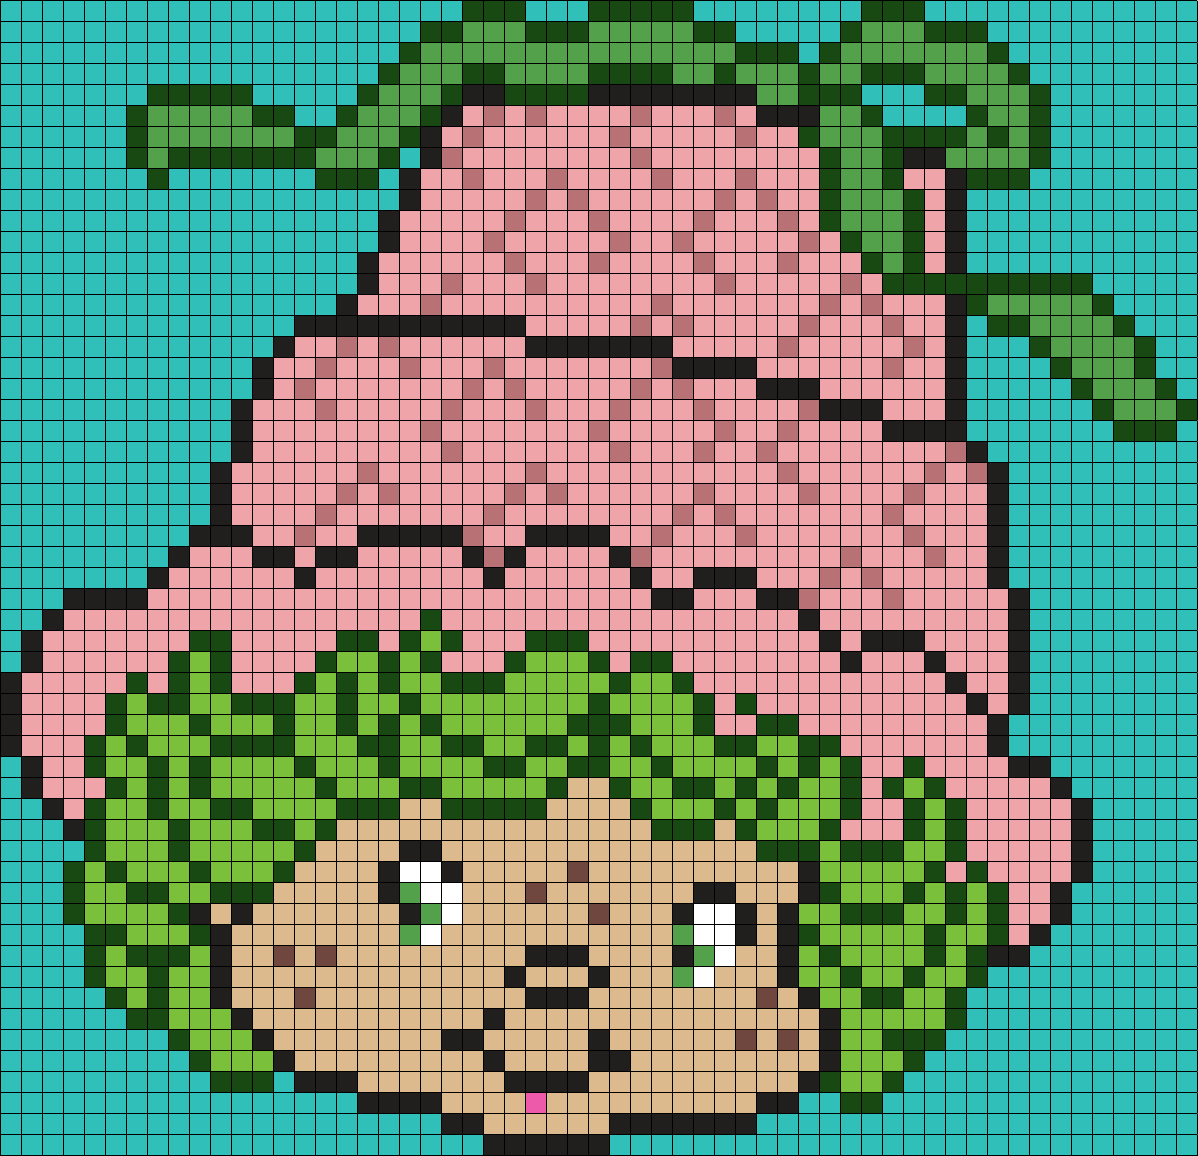 Lime Chiffon From Strawberry Shortcake (Square) Perler Bead Pattern / Bead Sprite